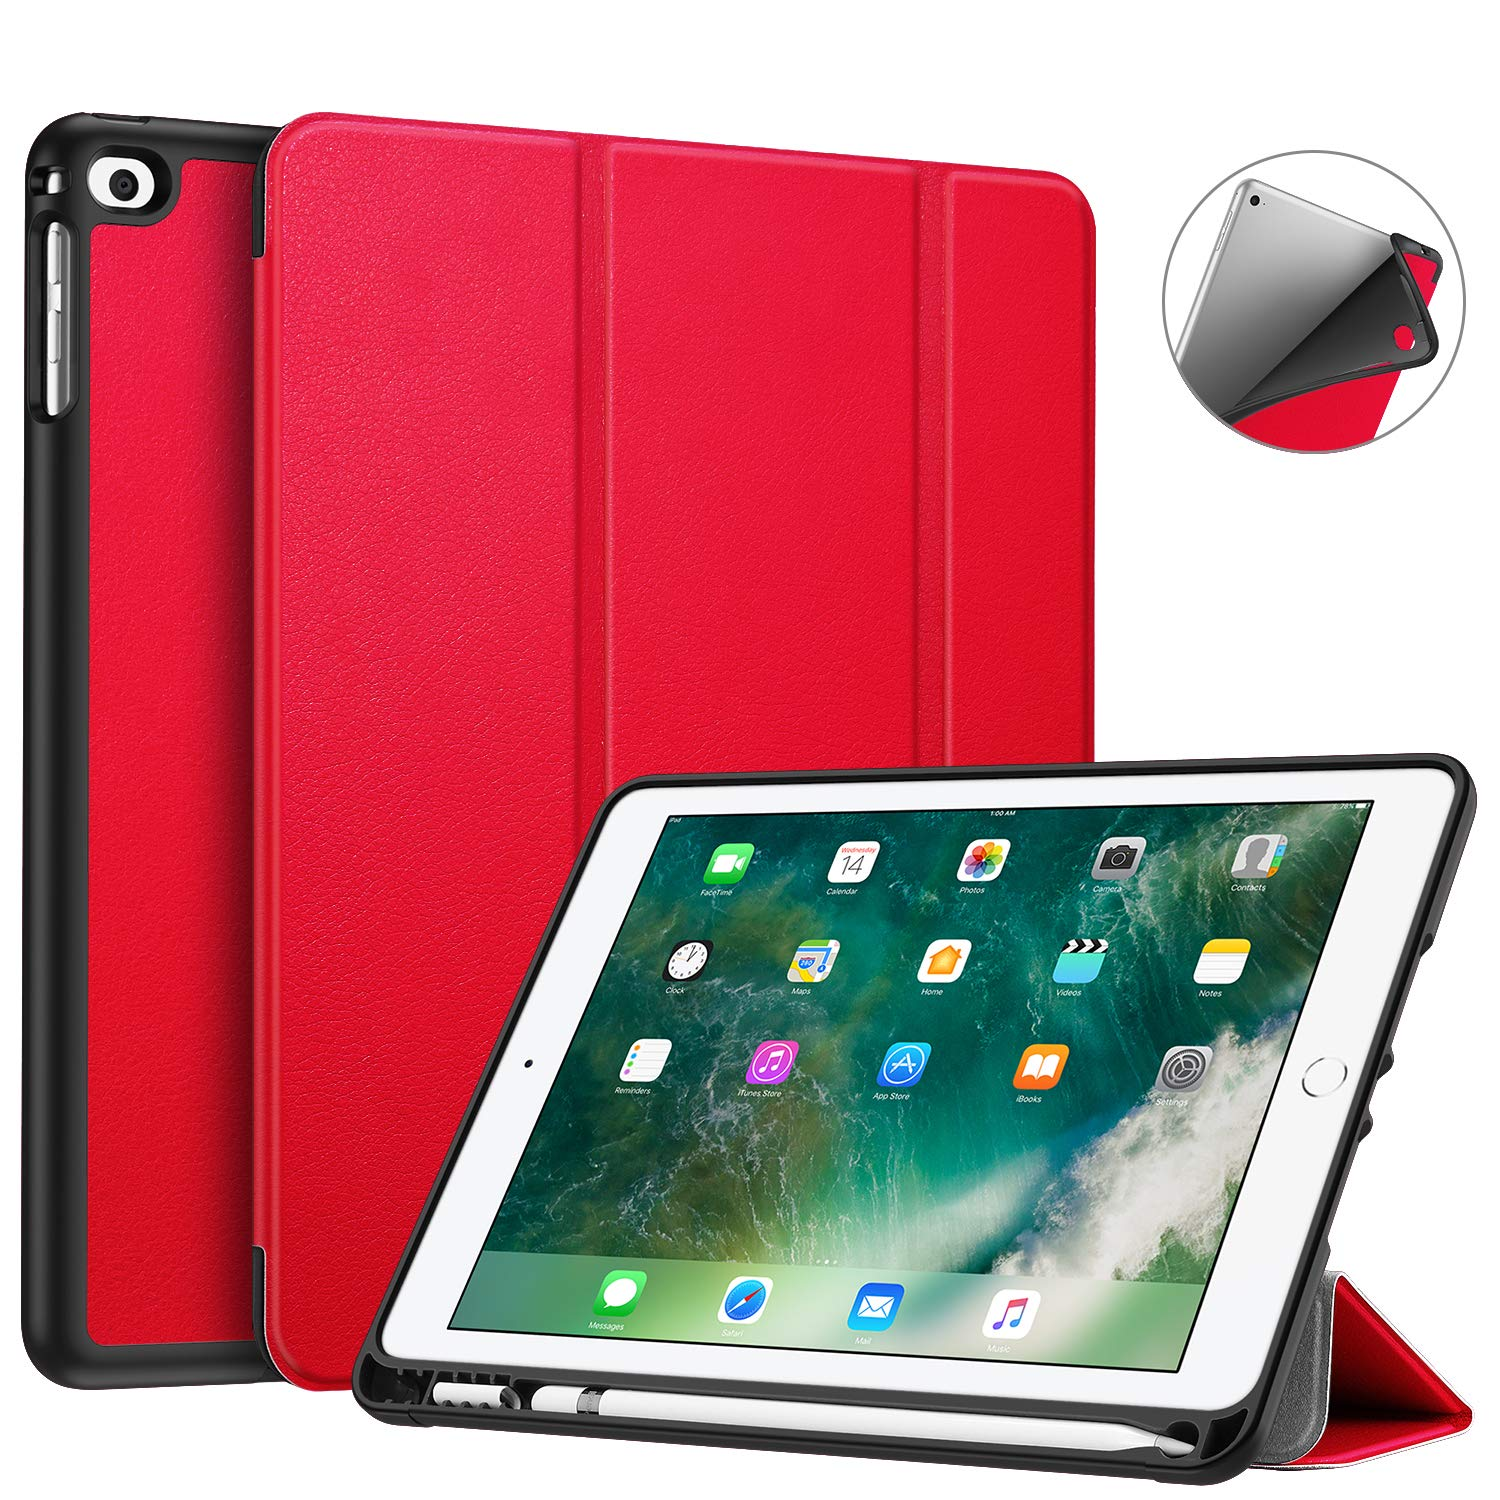 Fintie Case with Built-in Pencil Holder for iPad 9.7 2018 2017 / iPad Air 2 / iPad Air - [SlimShell] Lightweight Soft TPU Back Protective Cover w/Auto Wake Sleep, Red